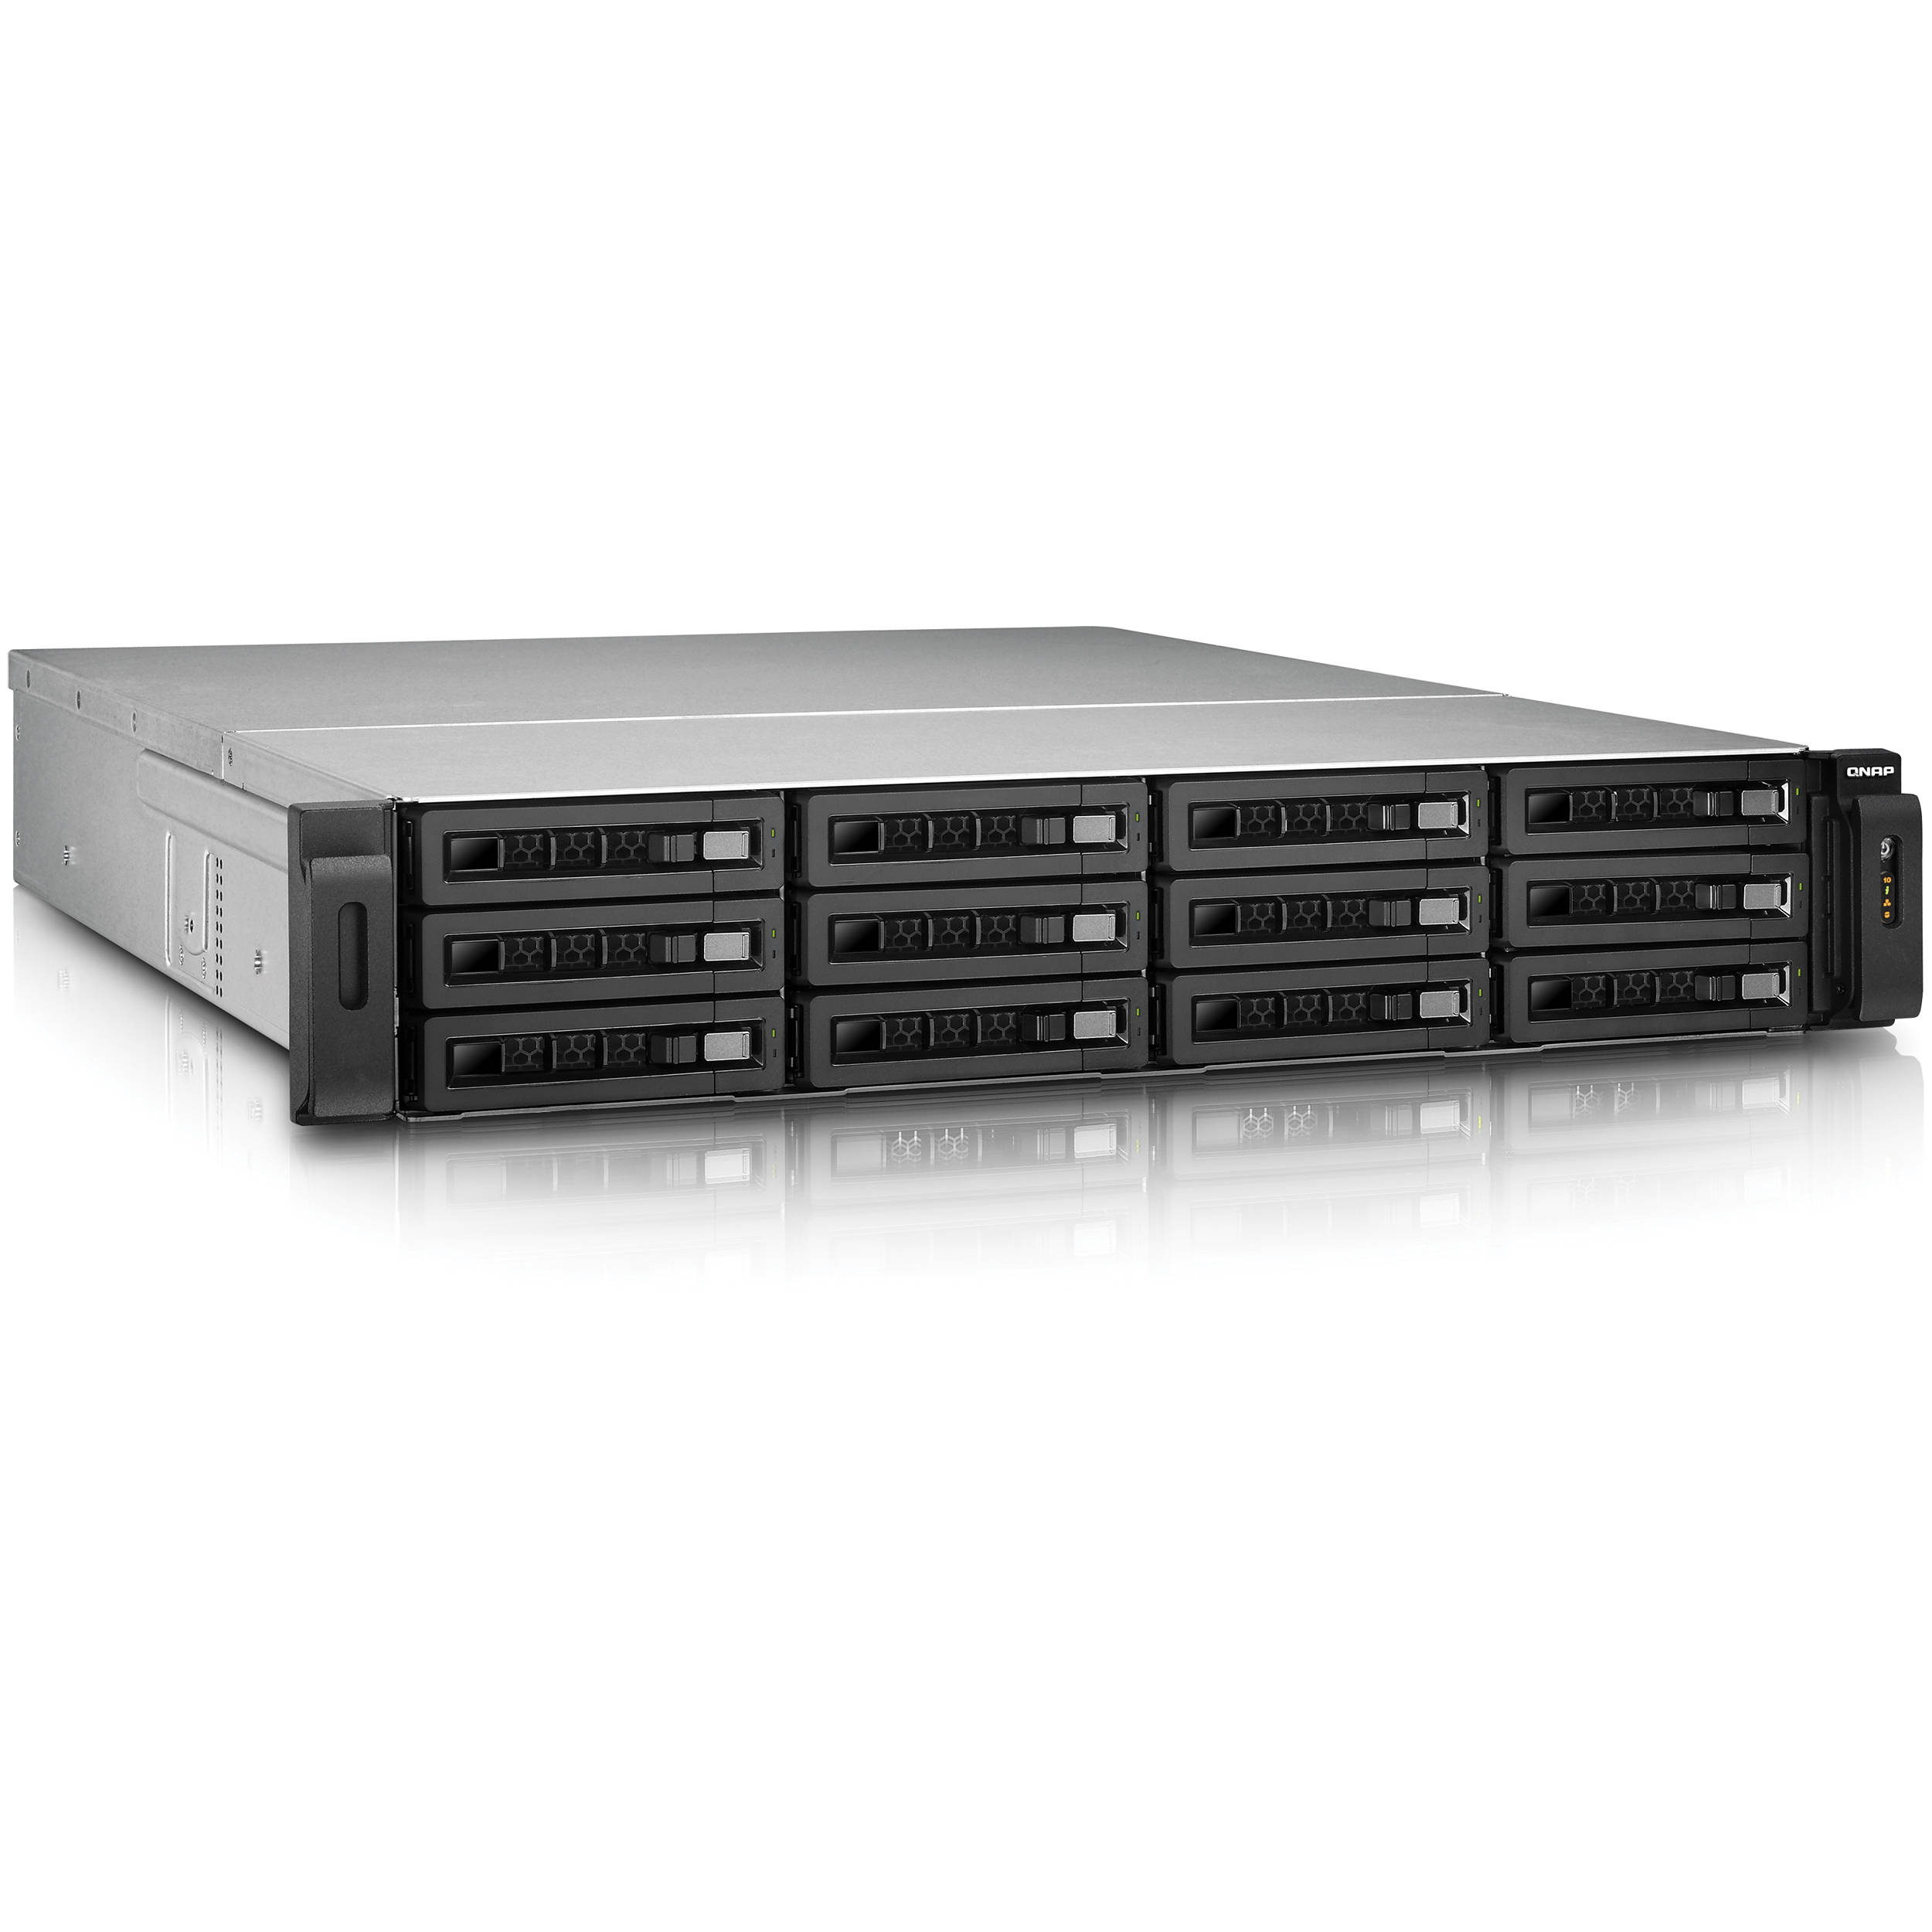 QNAP TS-1279U-RP 12-Bay IP-SAN/NAS SATA 6G/USB 3 0 Storage Solution